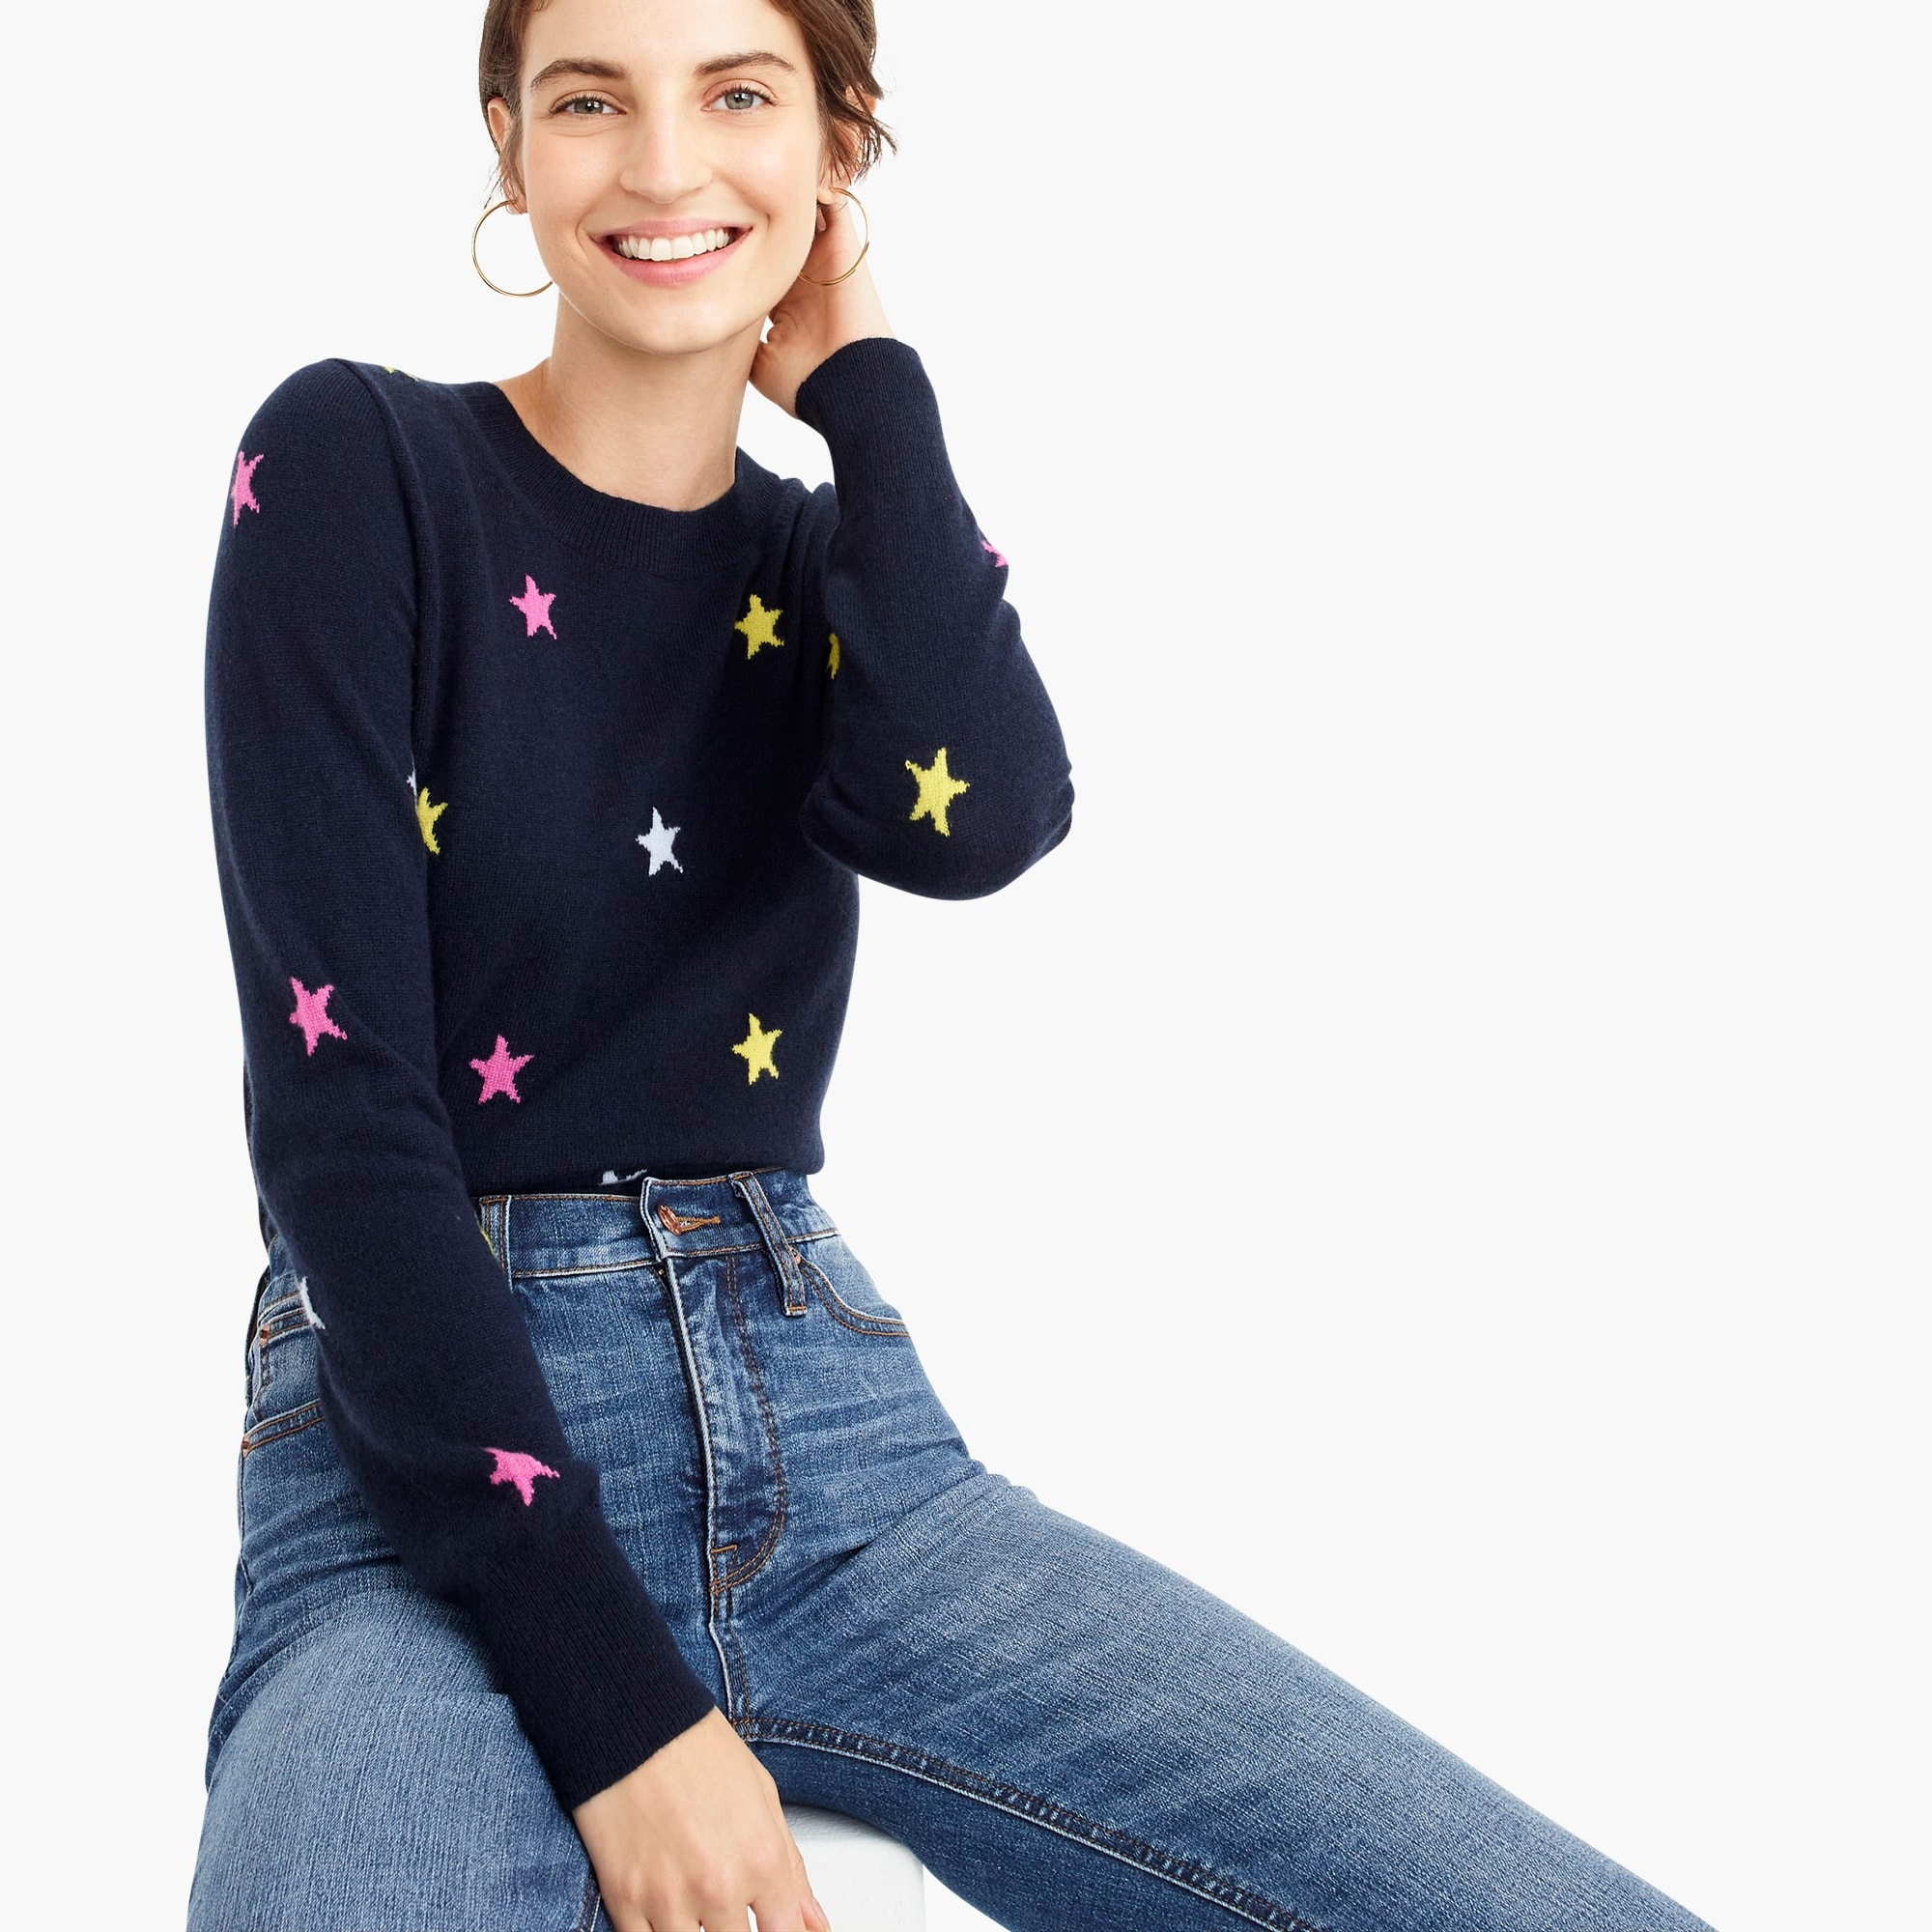 womens Long-sleeve everyday cashmere crewneck sweater in stars